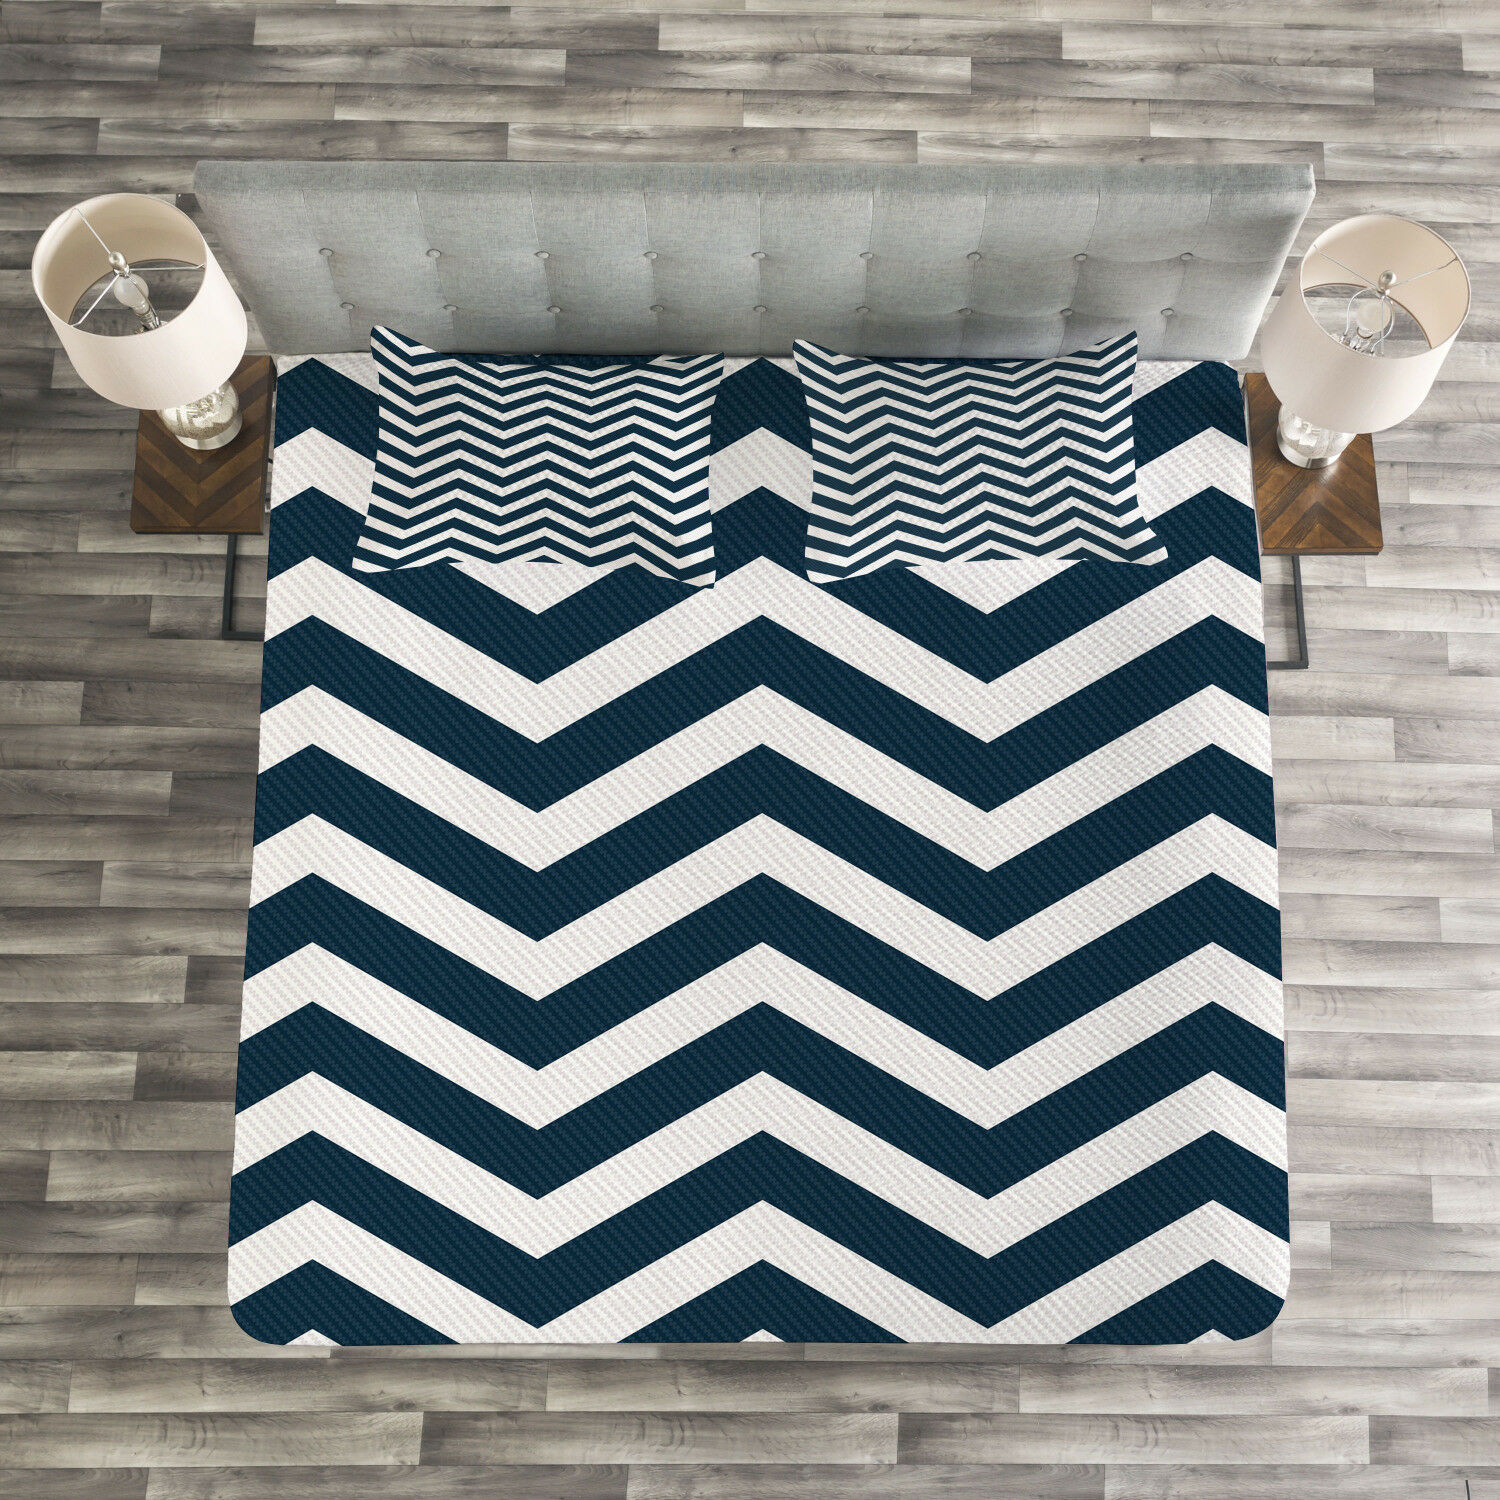 Navy Quilted Bedspread & Pillow Shams Set, Zigzag Chevron blueeee Lines Print